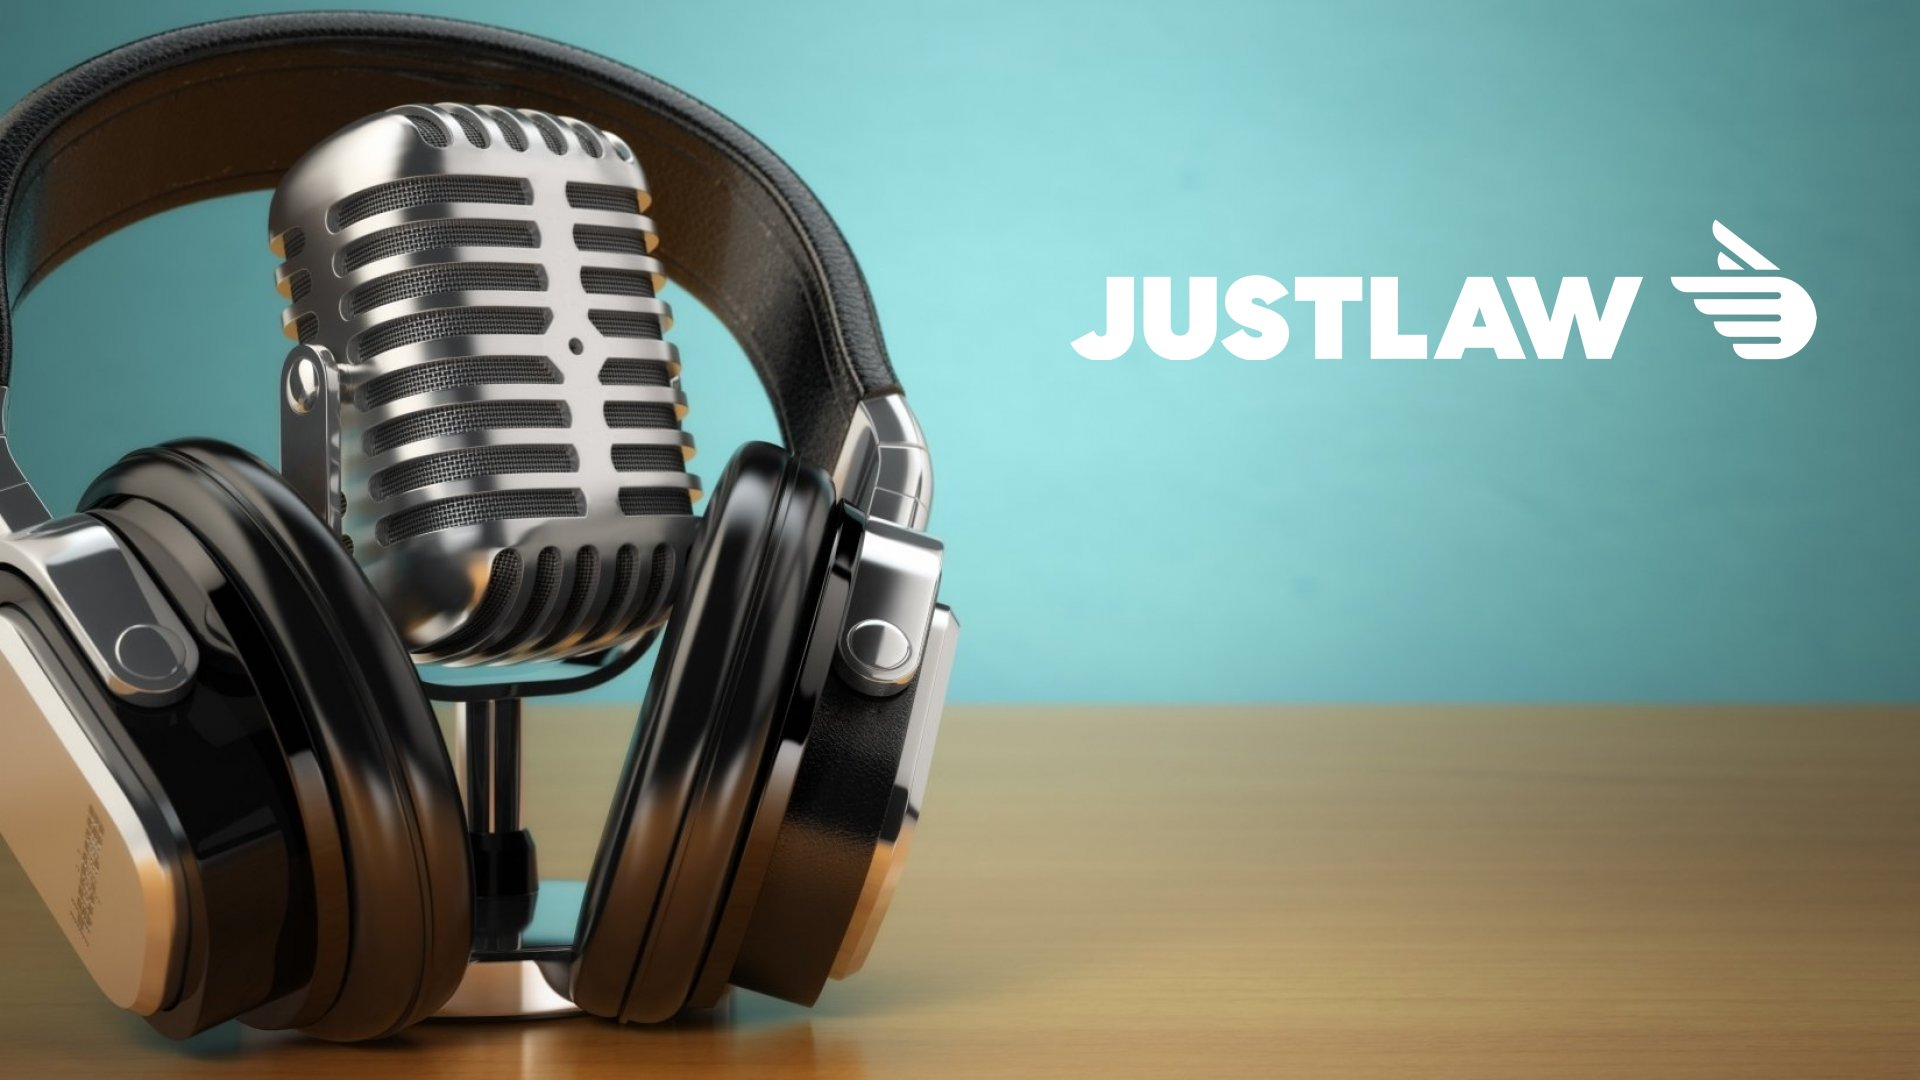 JUSTLAW founder appears on Legal Tech Startup Focus Podcast